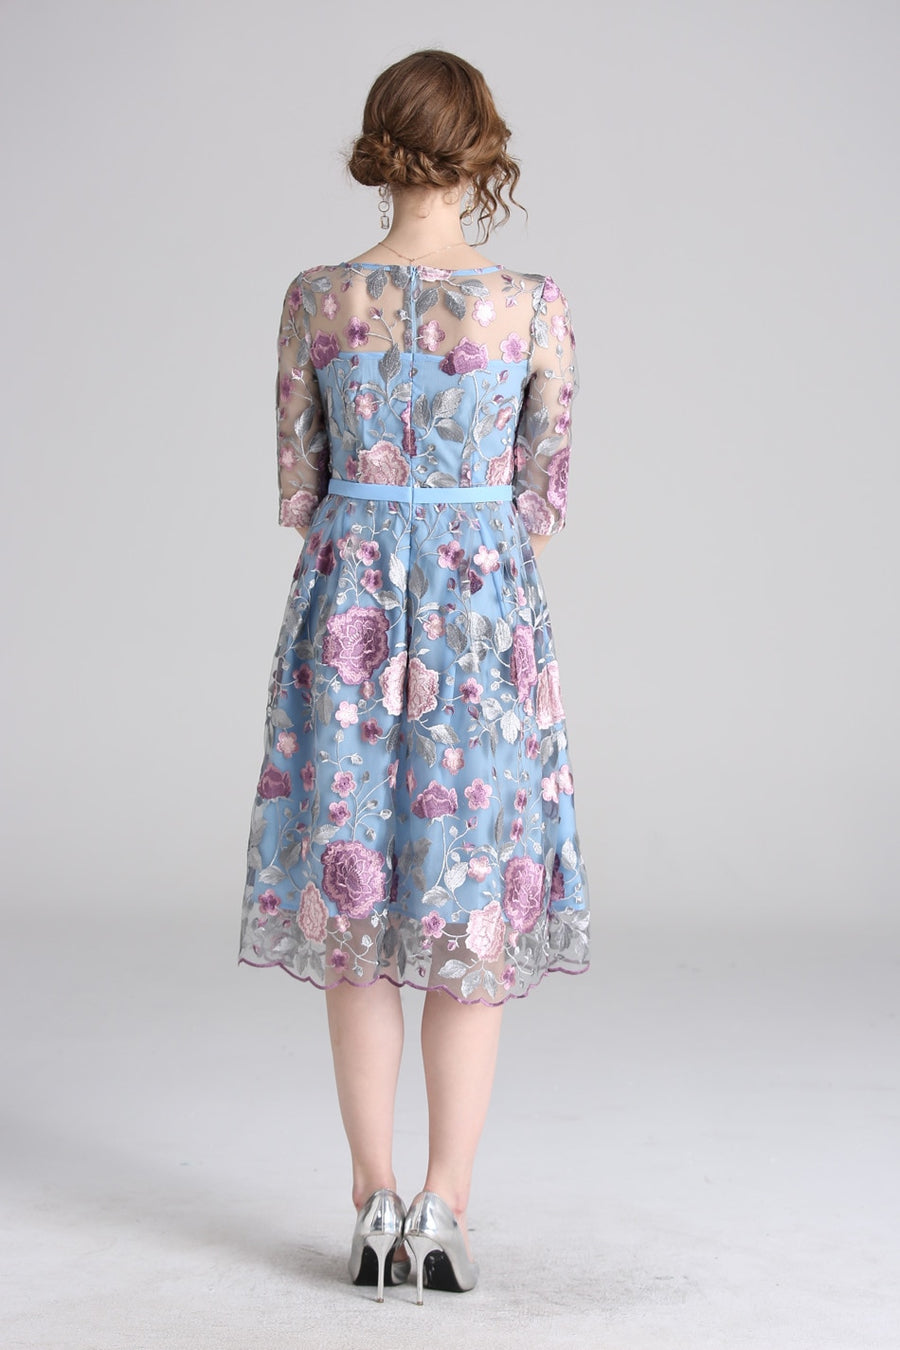 Blue Lace Floral Embroidery Knee-length A-line Dress